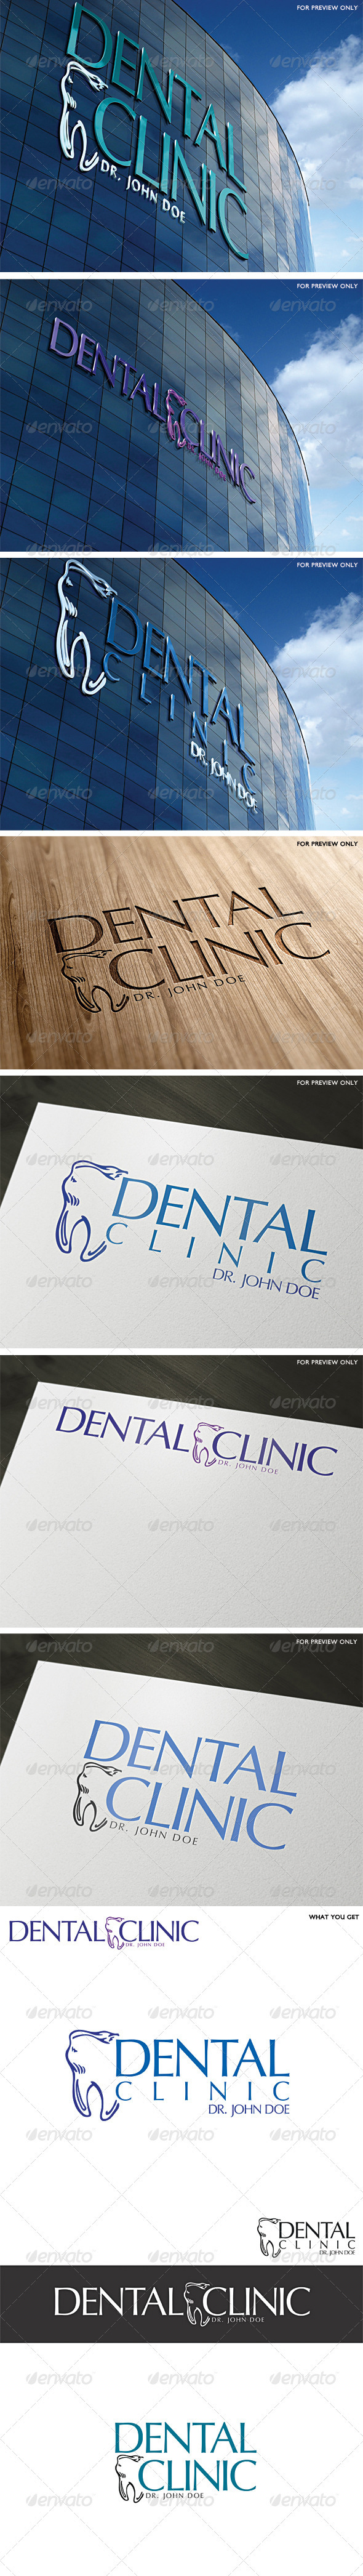 Dental Clinic Logo Template - Vector Abstract